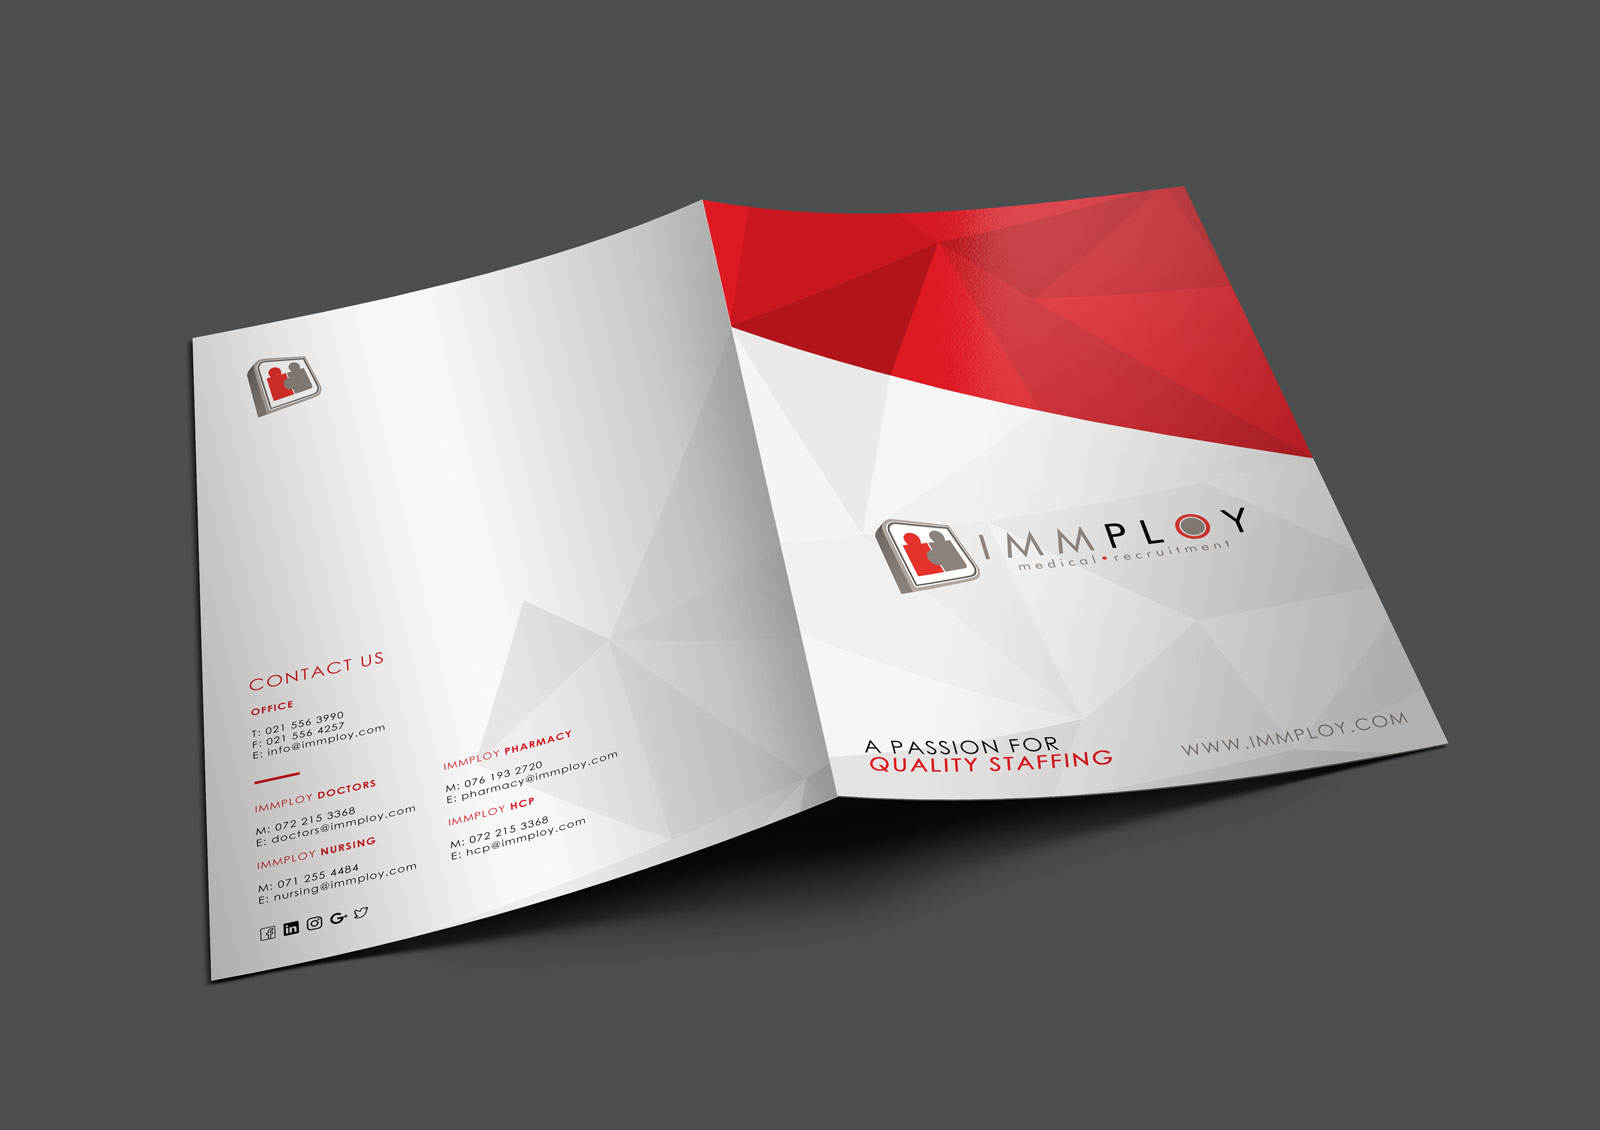 Immploy Medical Recruitment – Corporate Stationary